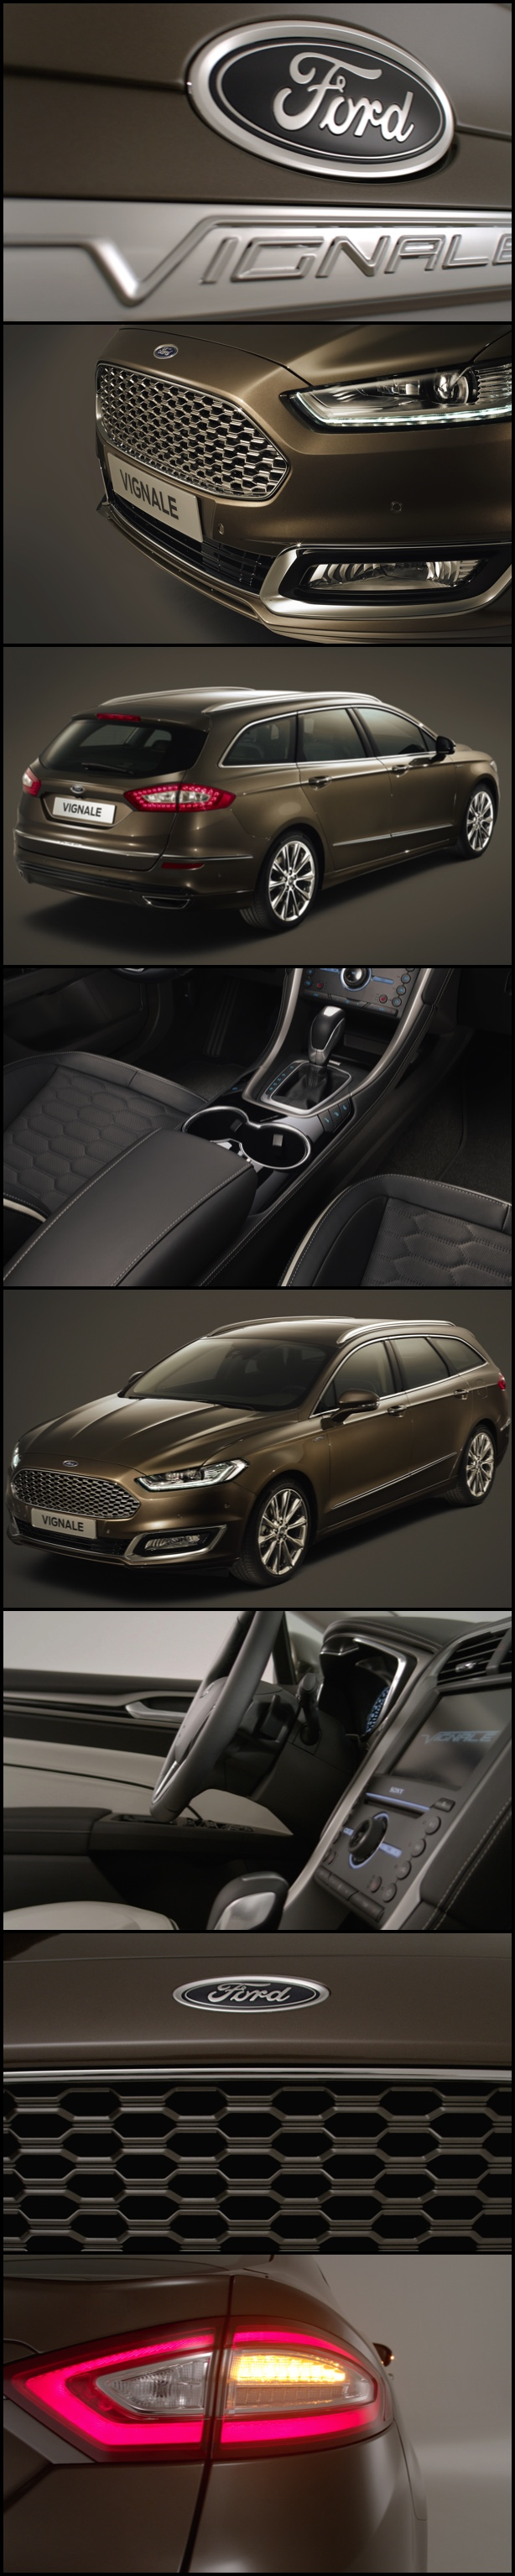 Ford mondeo rs ford pinterest ford mondeo rs ford mondeo and ford